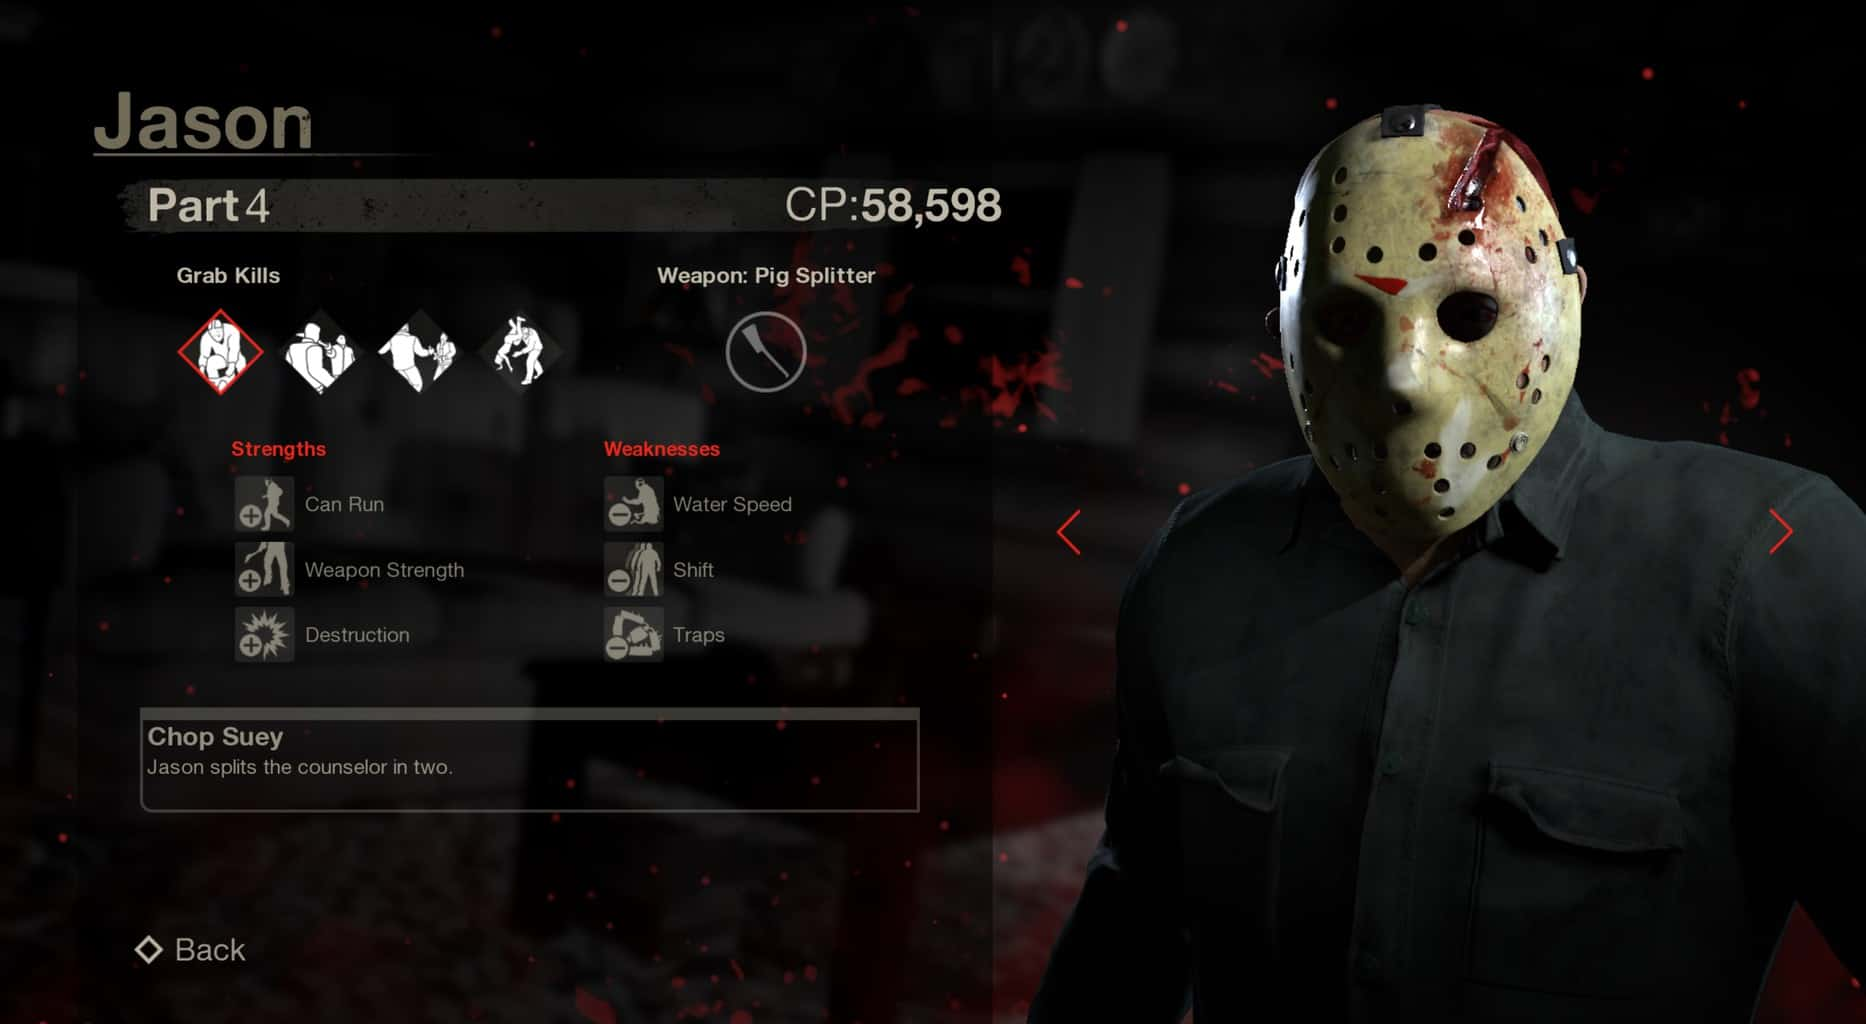 Friday the 13th: The Game Adds Part IV Content and Weather